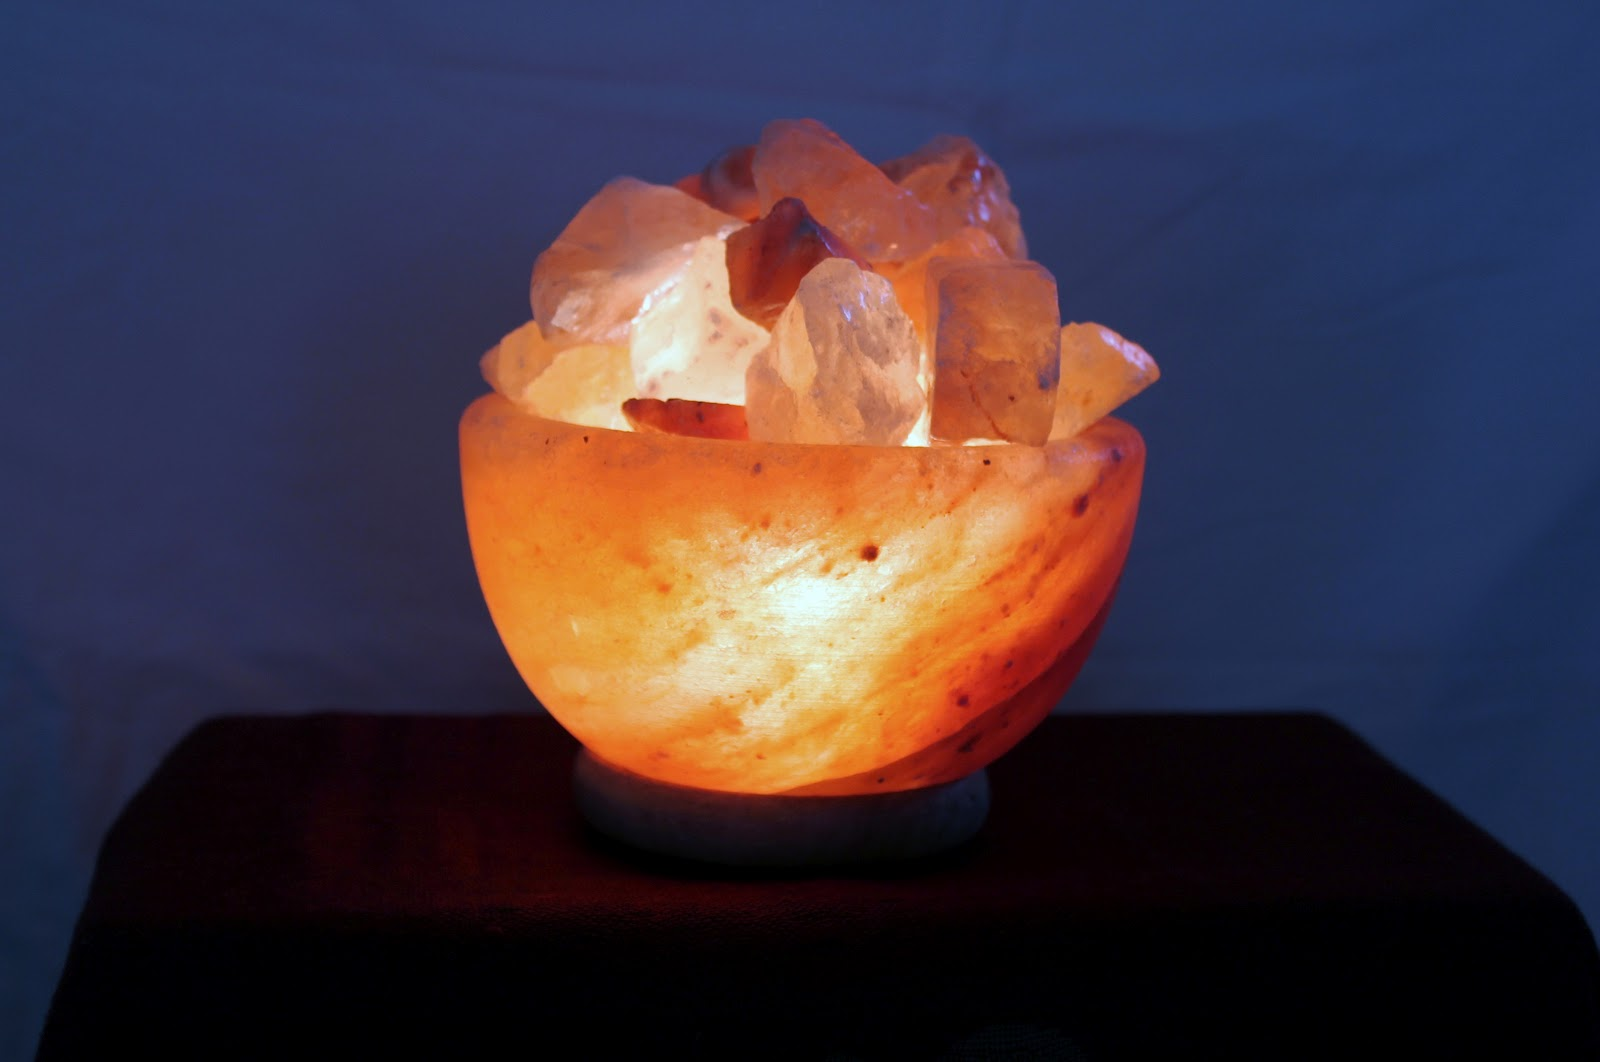 Salt Lamps History : Salt Lamp n?tur Museum quality insects, butterflies and natural history collectibles ...